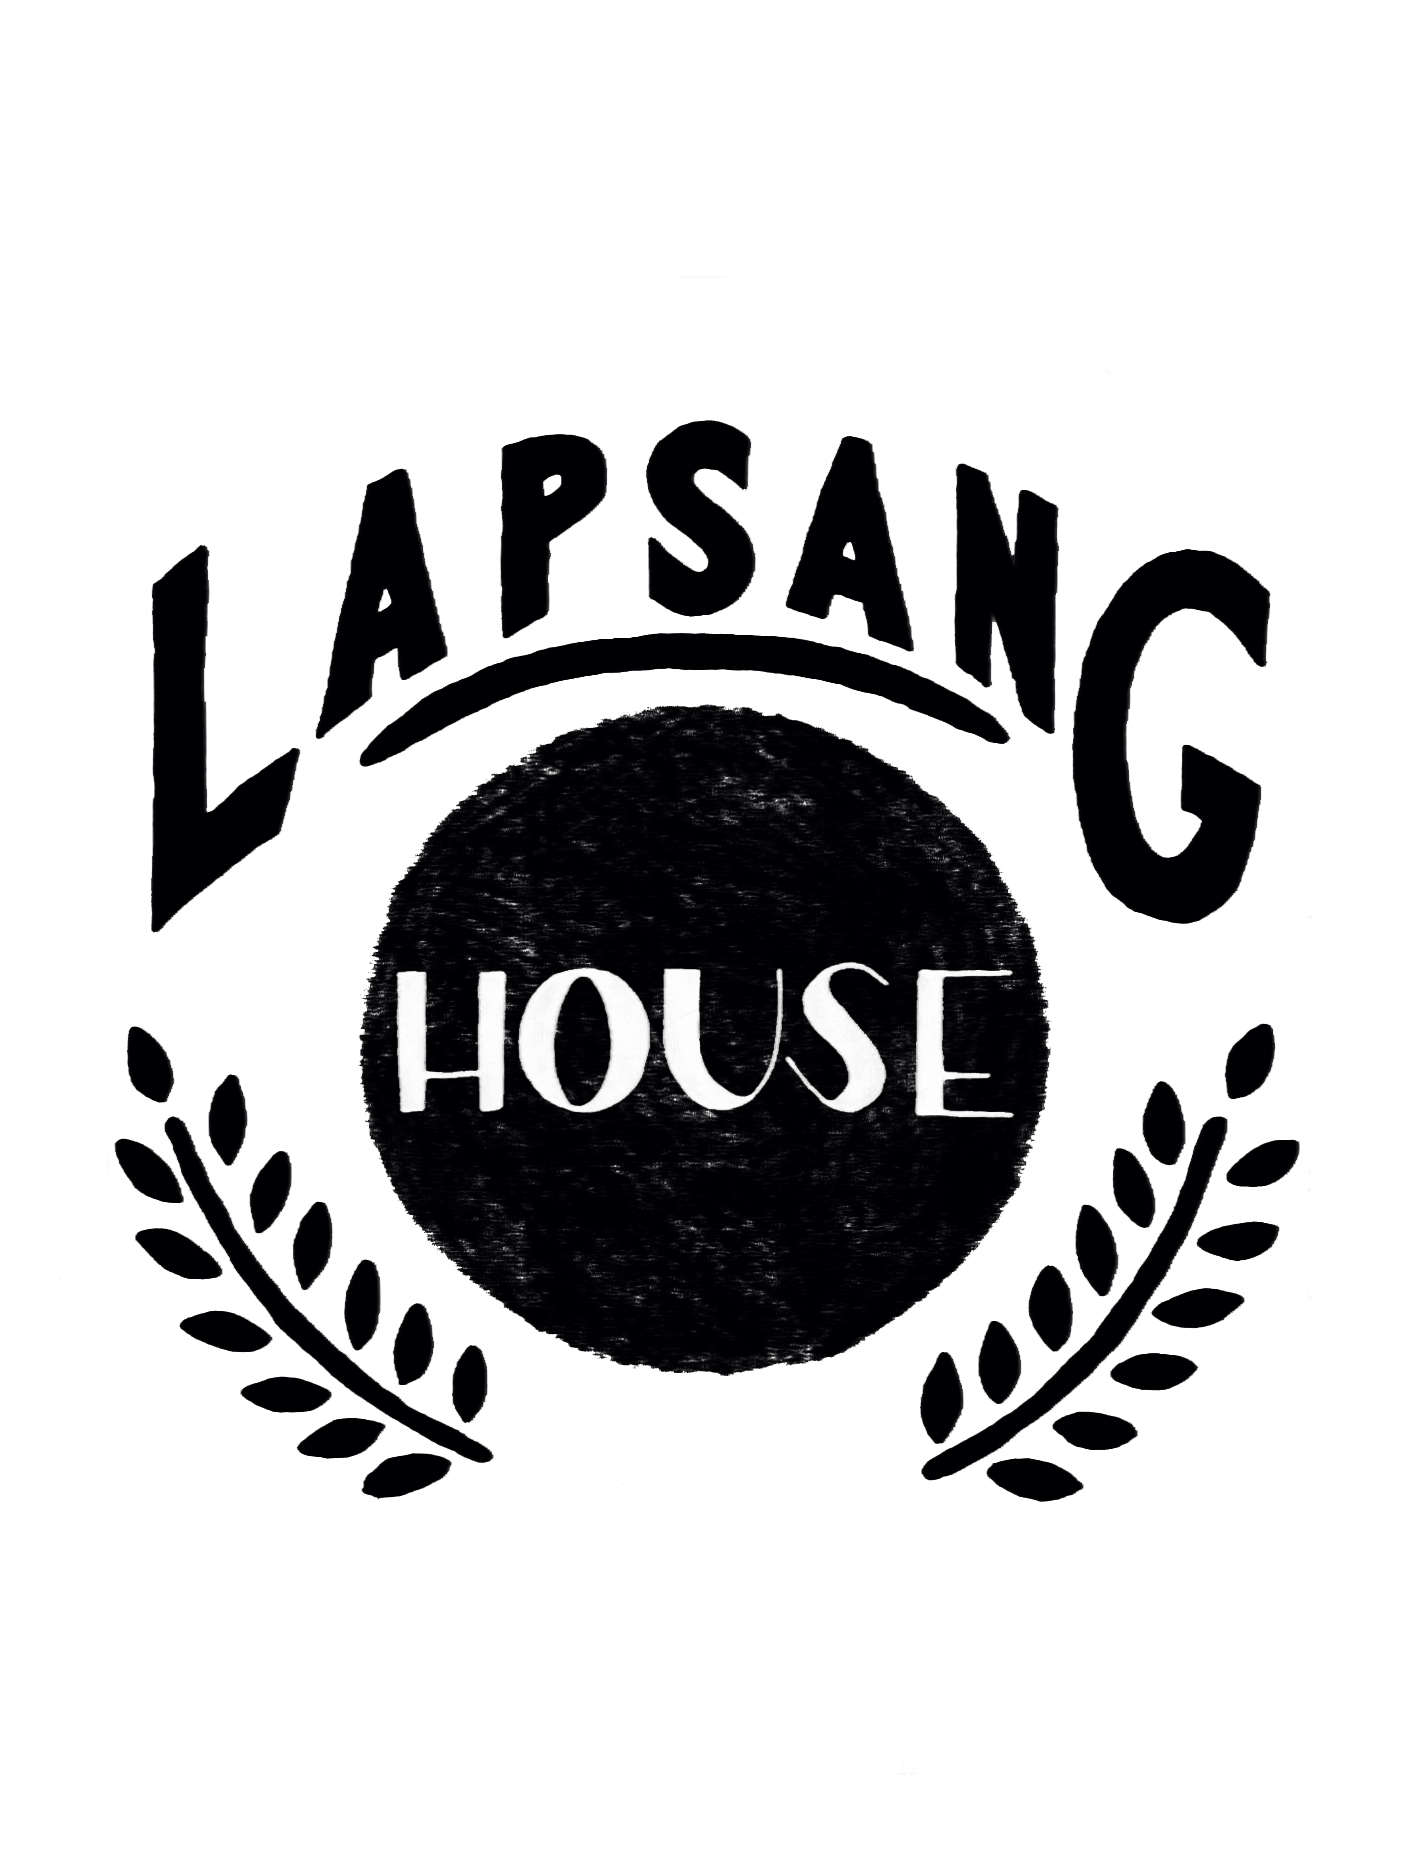 Lapsang House logo_main black version.jpg